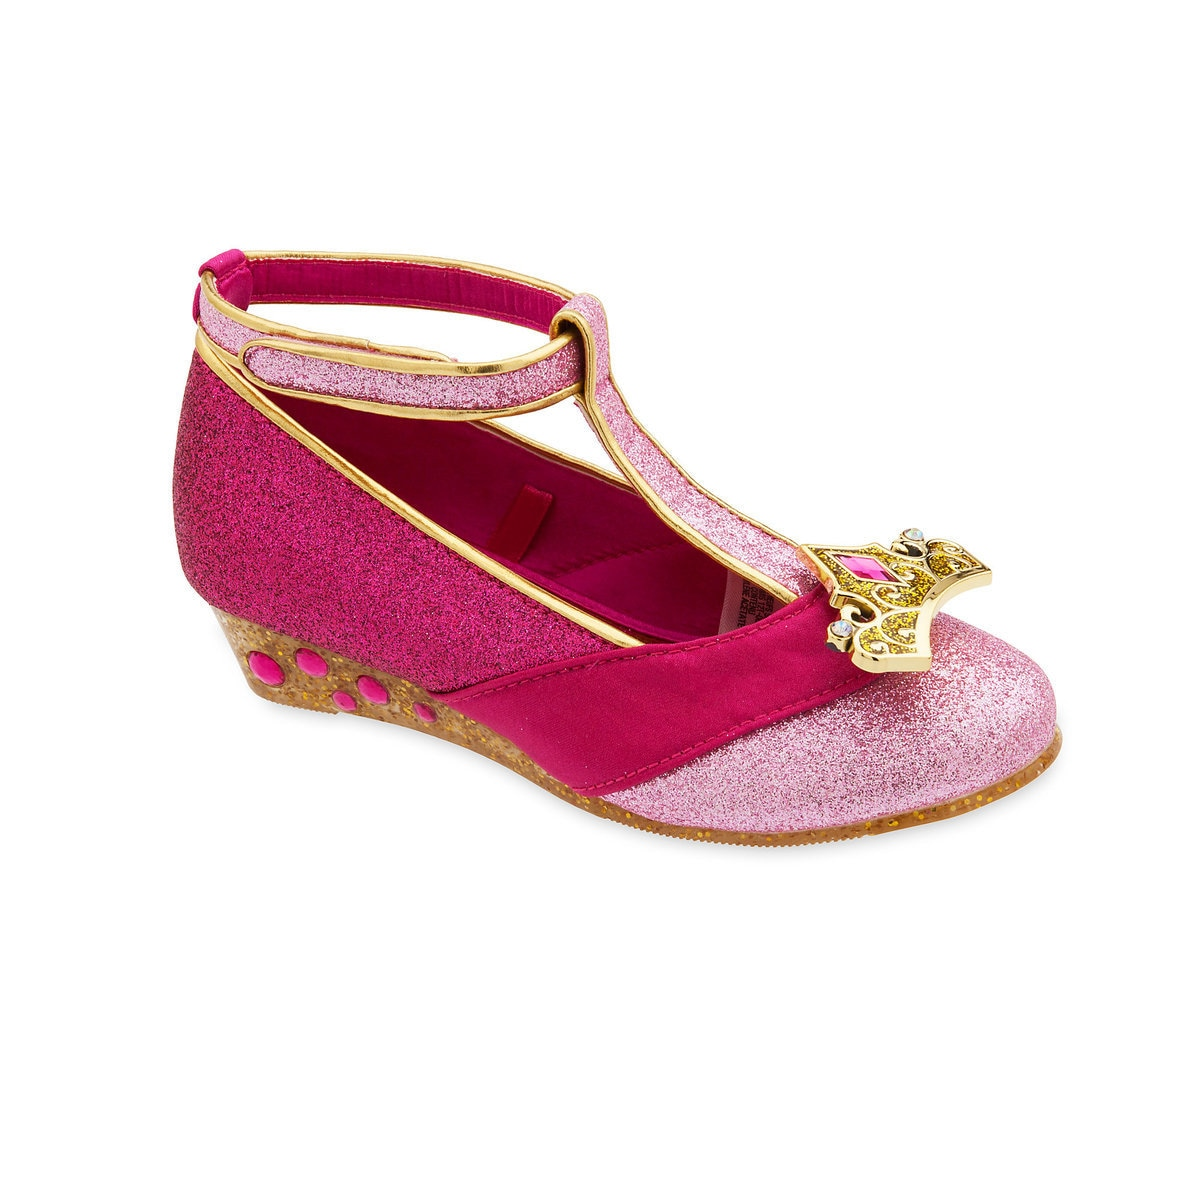 51f8f41cbbf Product Image of Aurora Costume Shoes for Kids - Sleeping Beauty   1